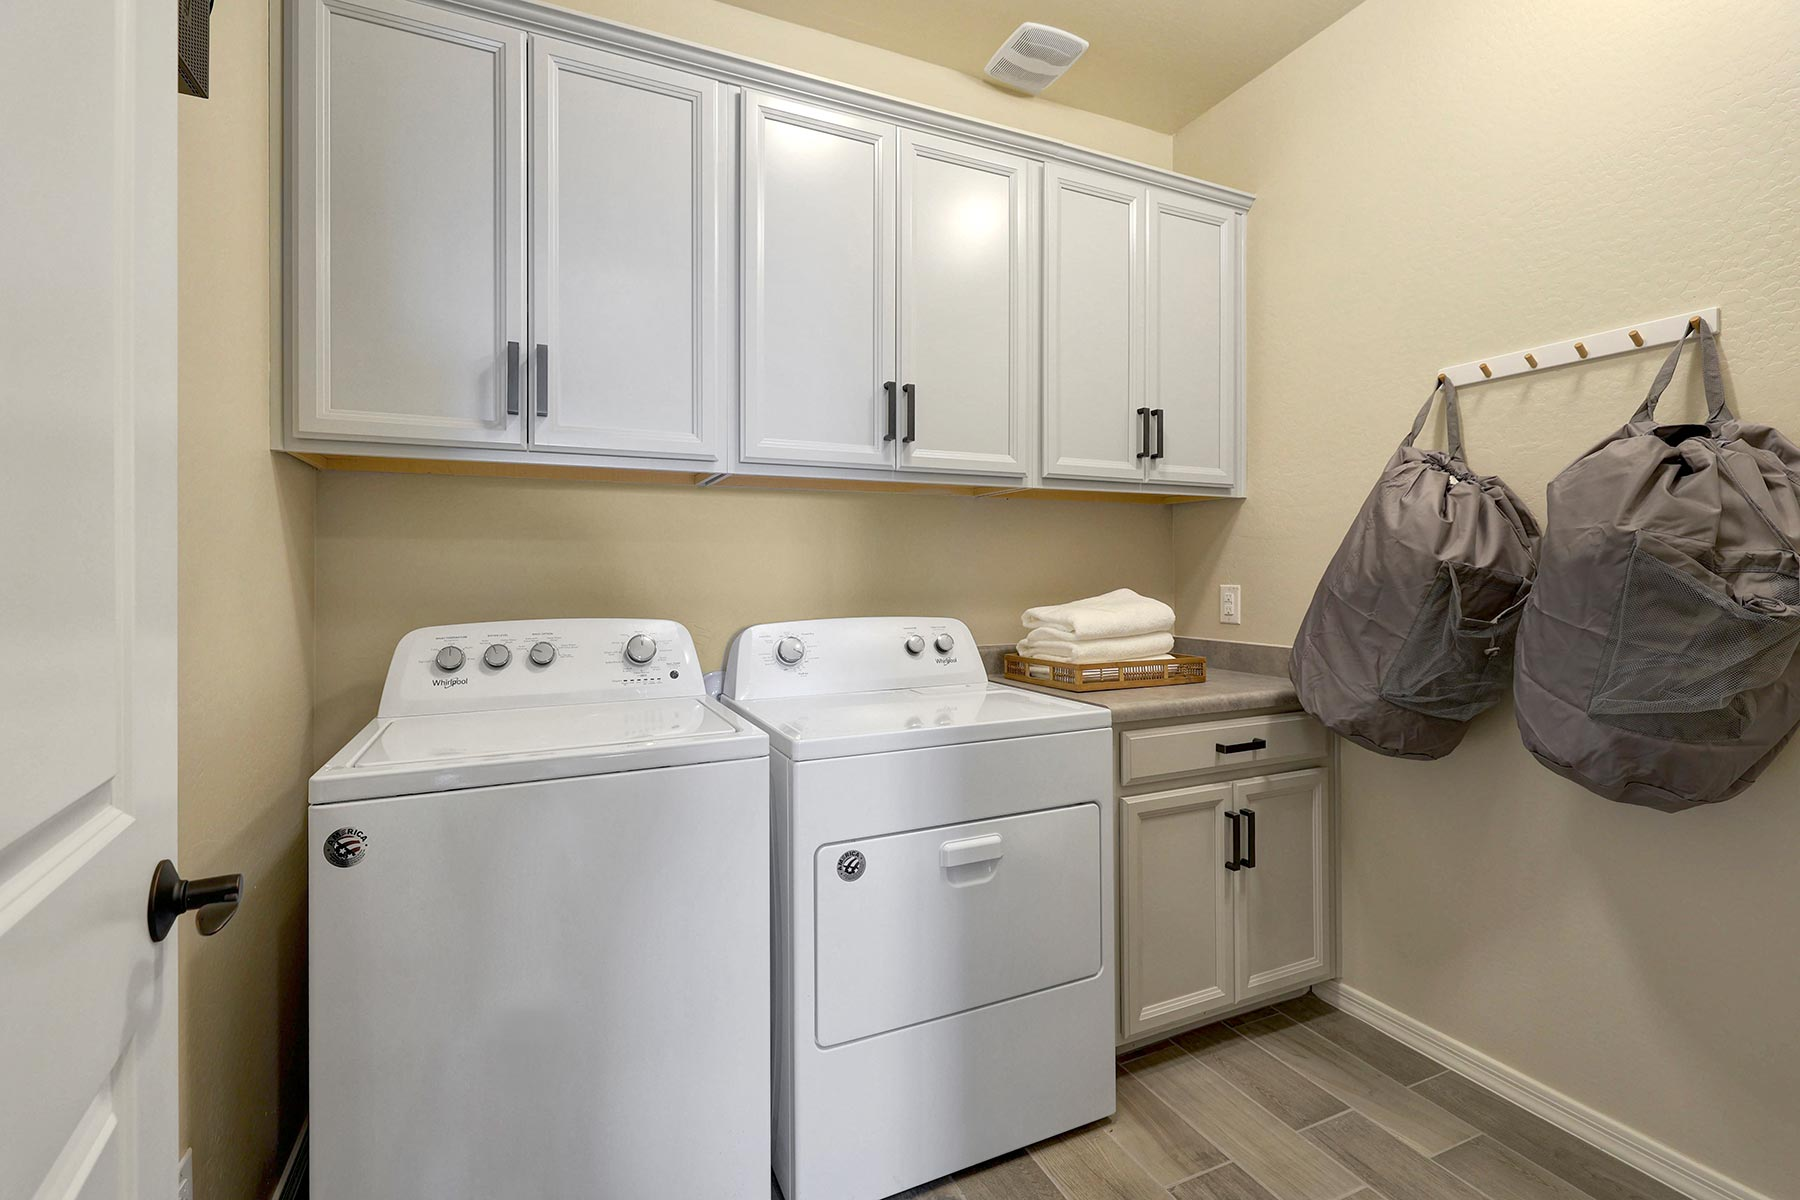 Bellwood Plan Laundry at Azure Canyon in Goodyear Arizona by Mattamy Homes